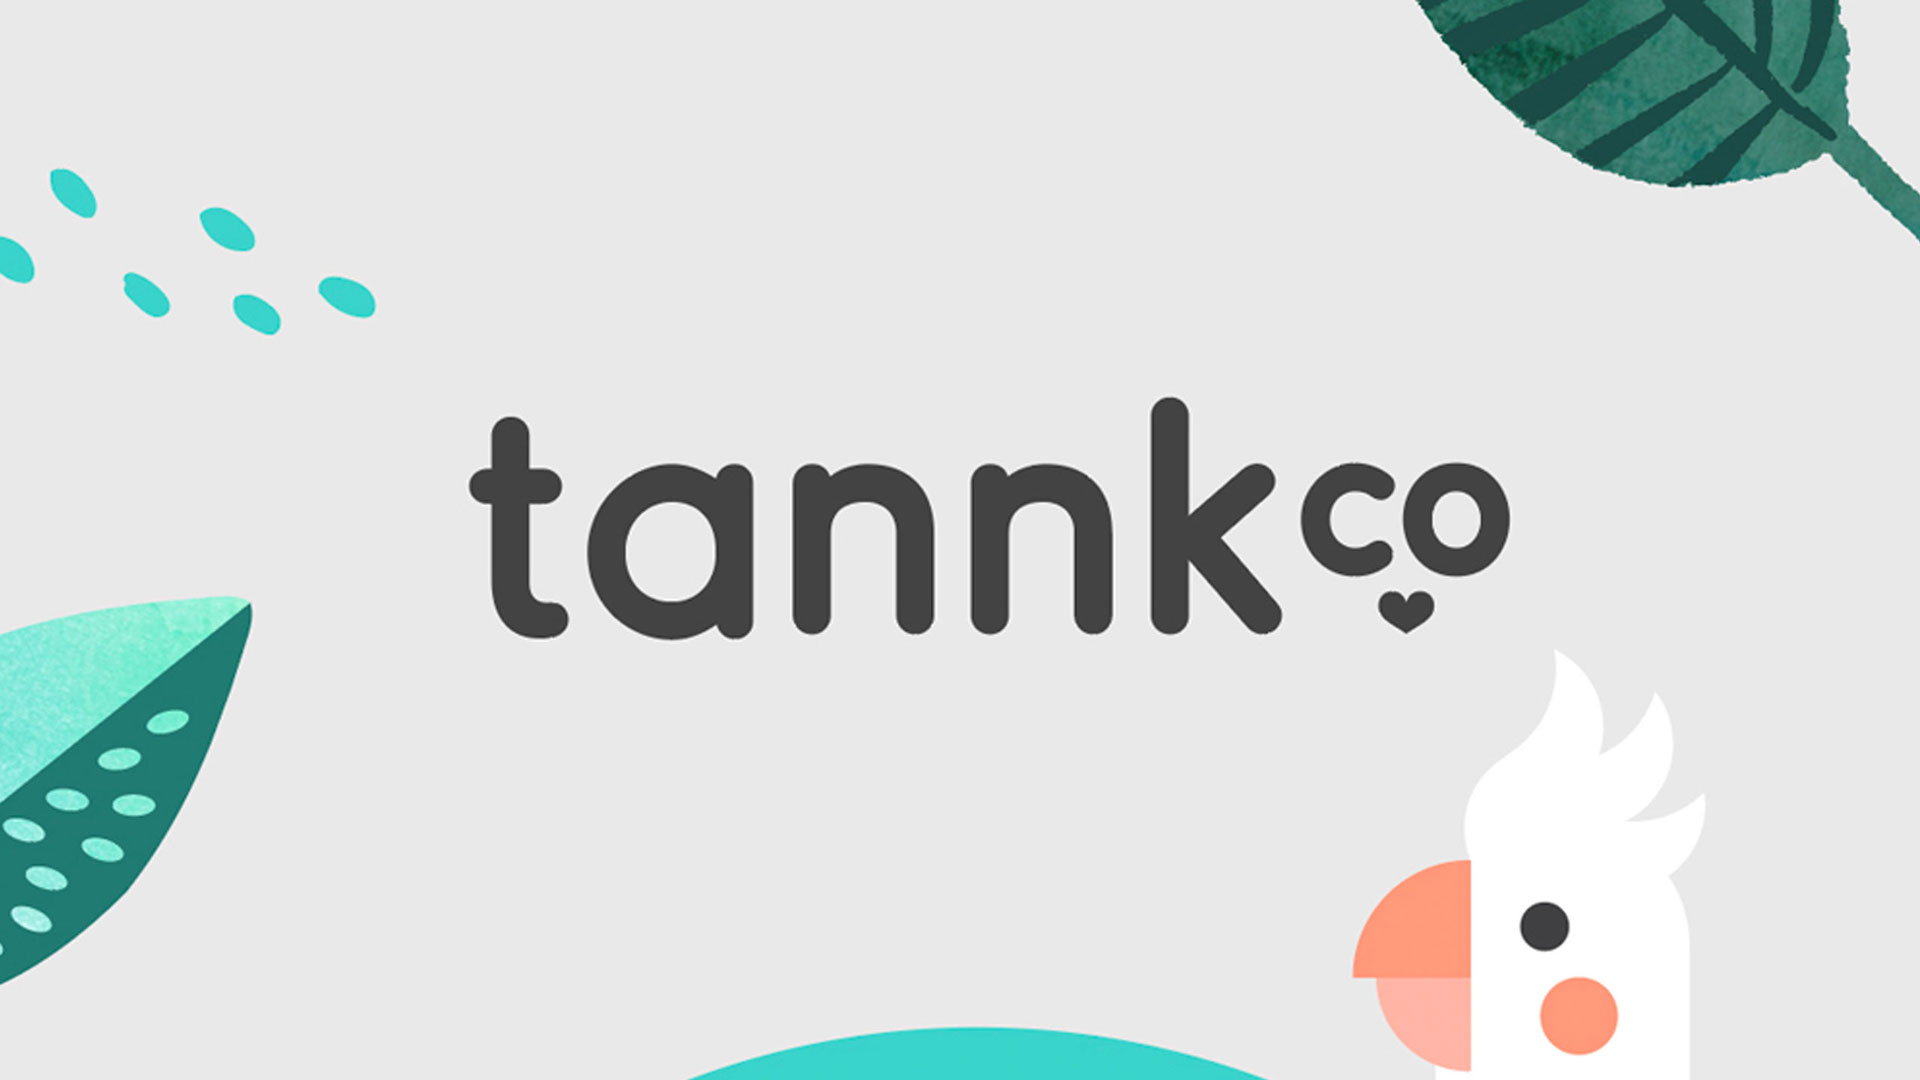 Tannk Co illustrations and logo